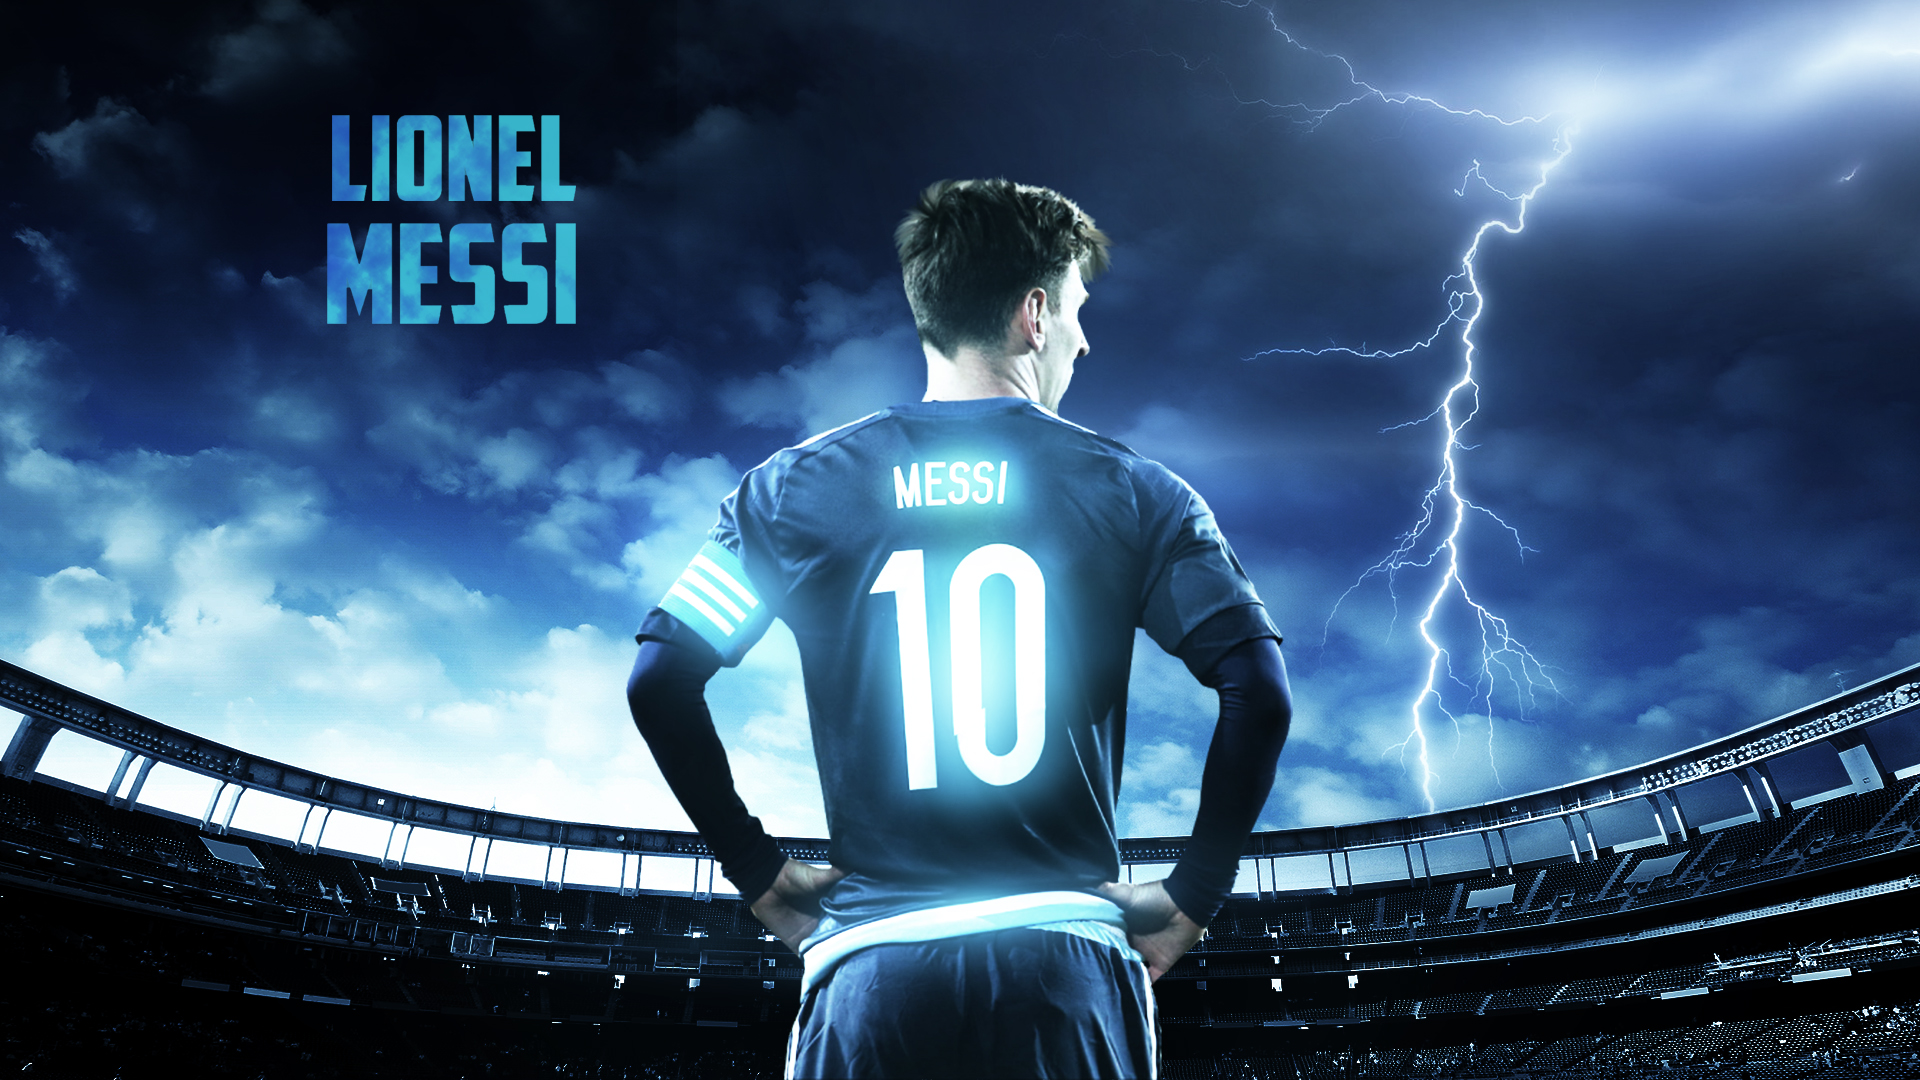 Lionel Messi 2015 Argentina Wallpaper by RakaGFX on DeviantArt